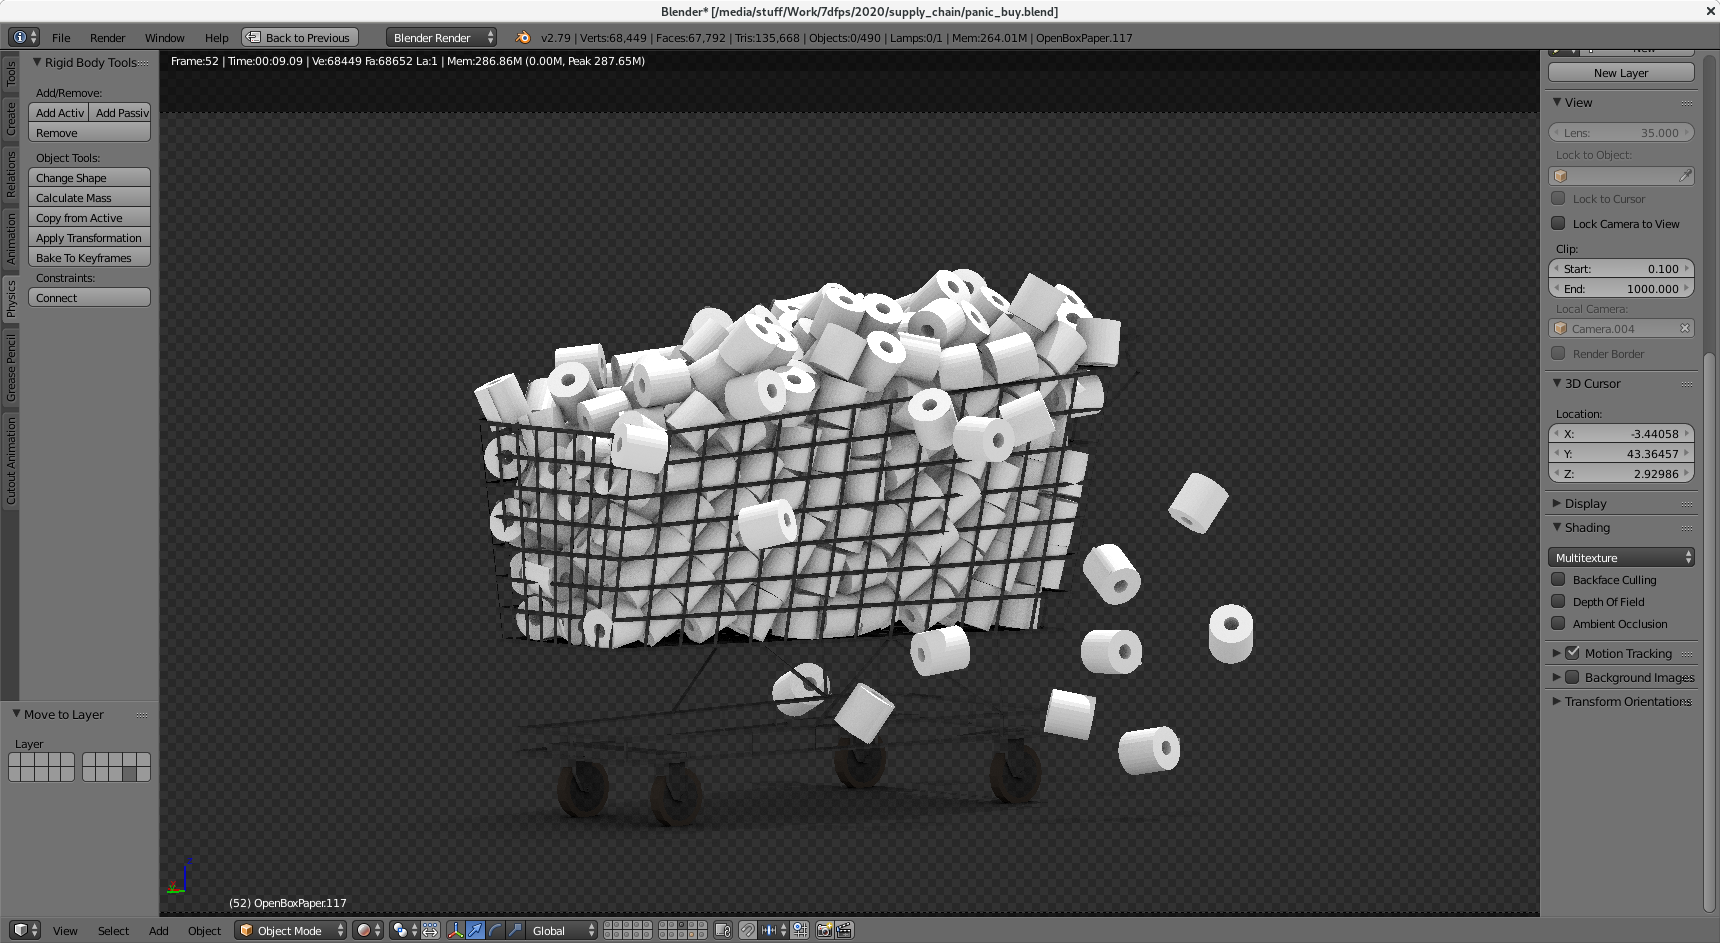 A low poly render of a shopping trolley full of toilet paper